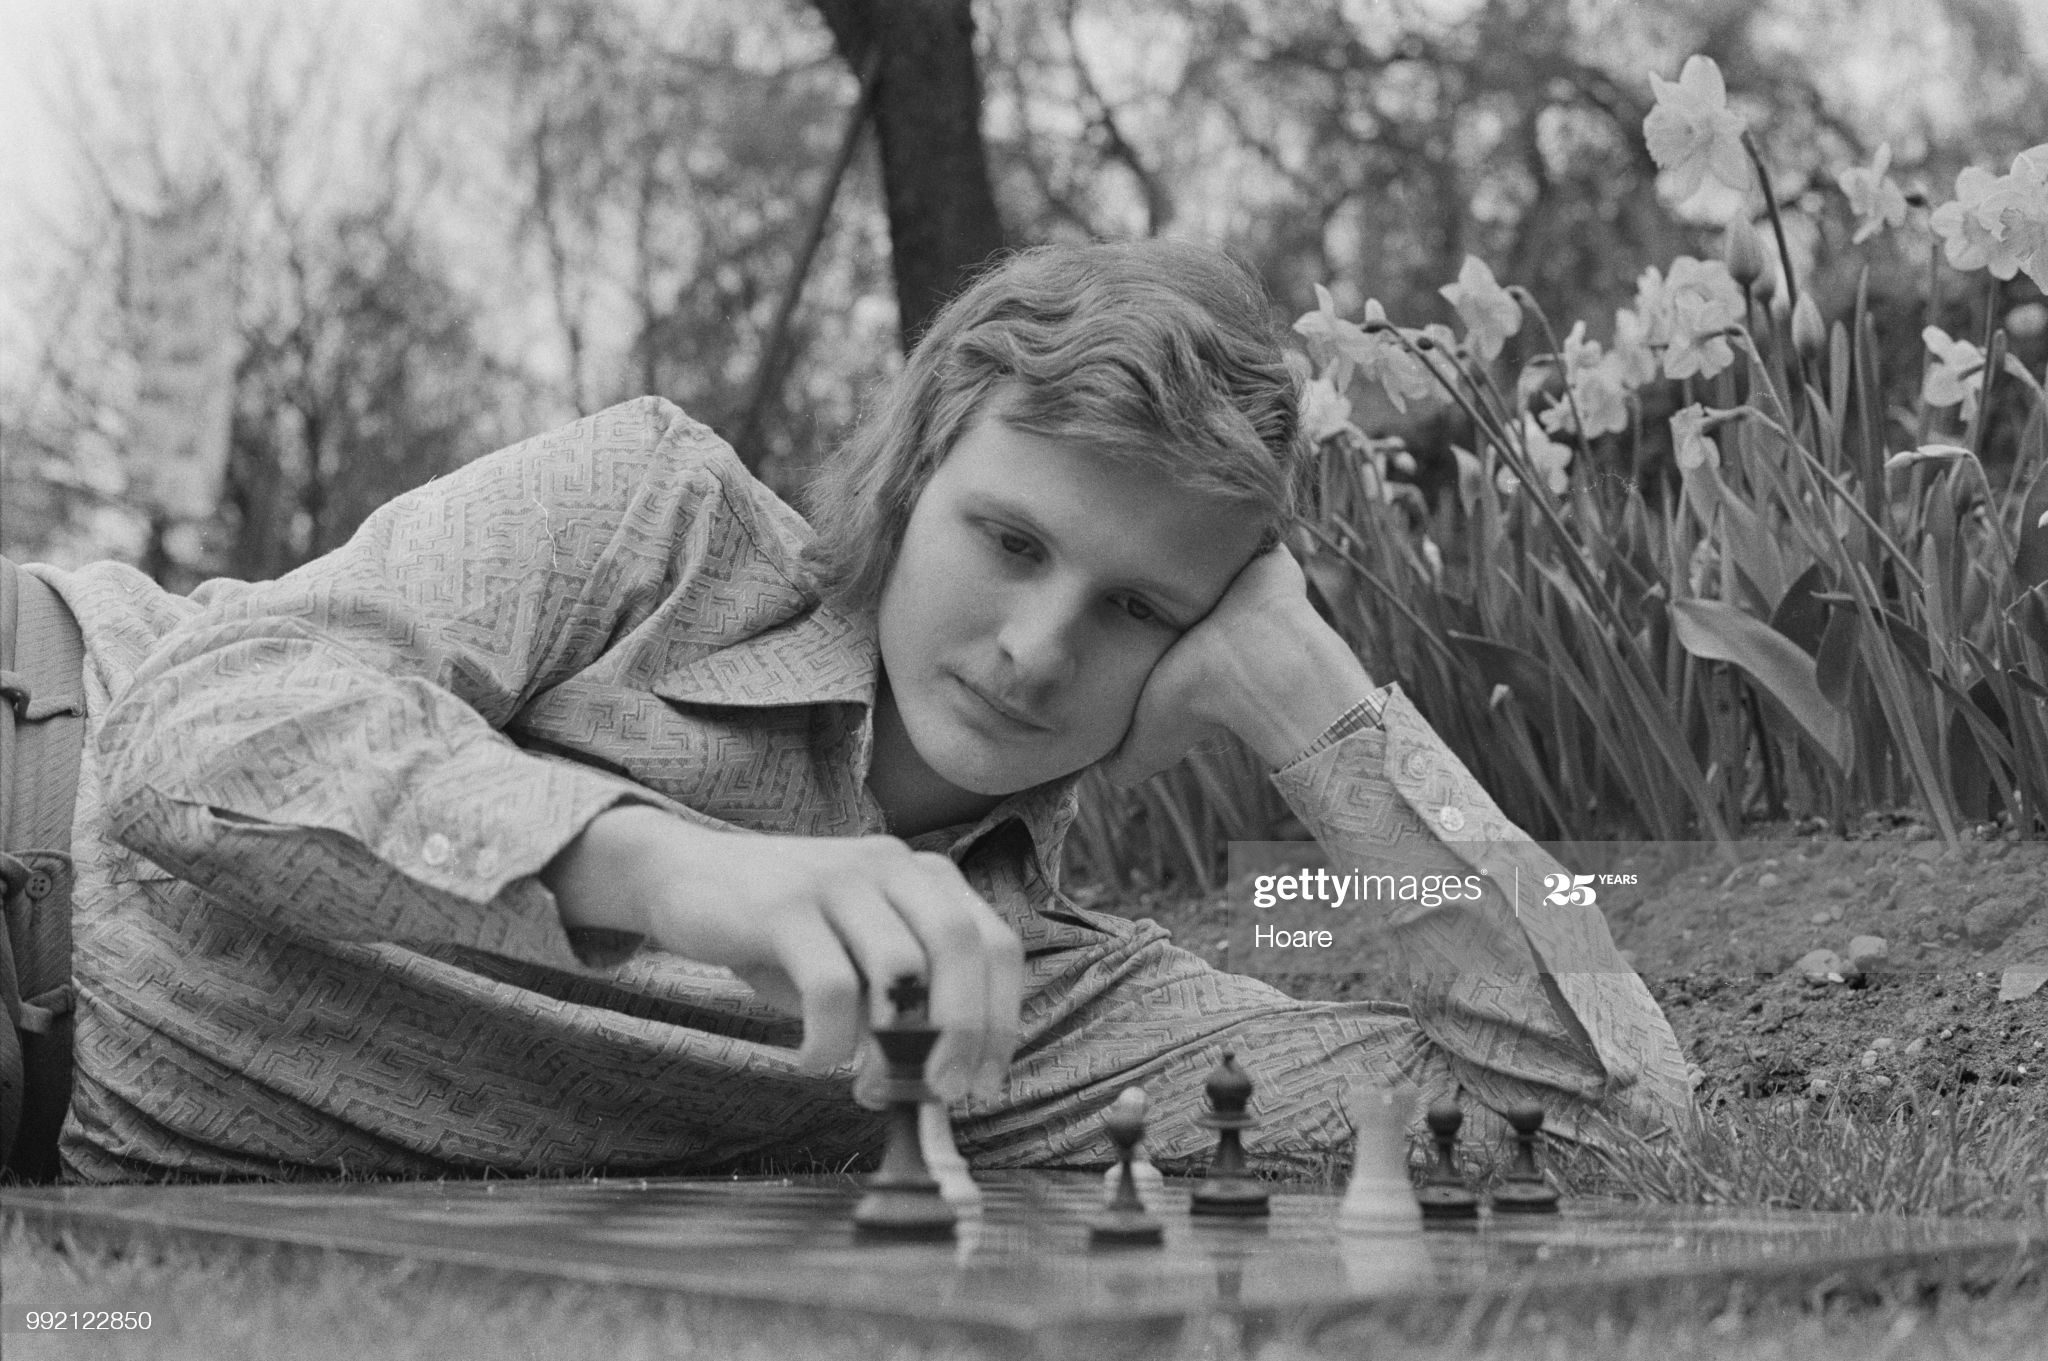 English chess grandmaster Tony Miles (1955 - 2001), UK, 6th May 1973. (Photo by Hoare/Daily Express/Hulton Archive/Getty Images)